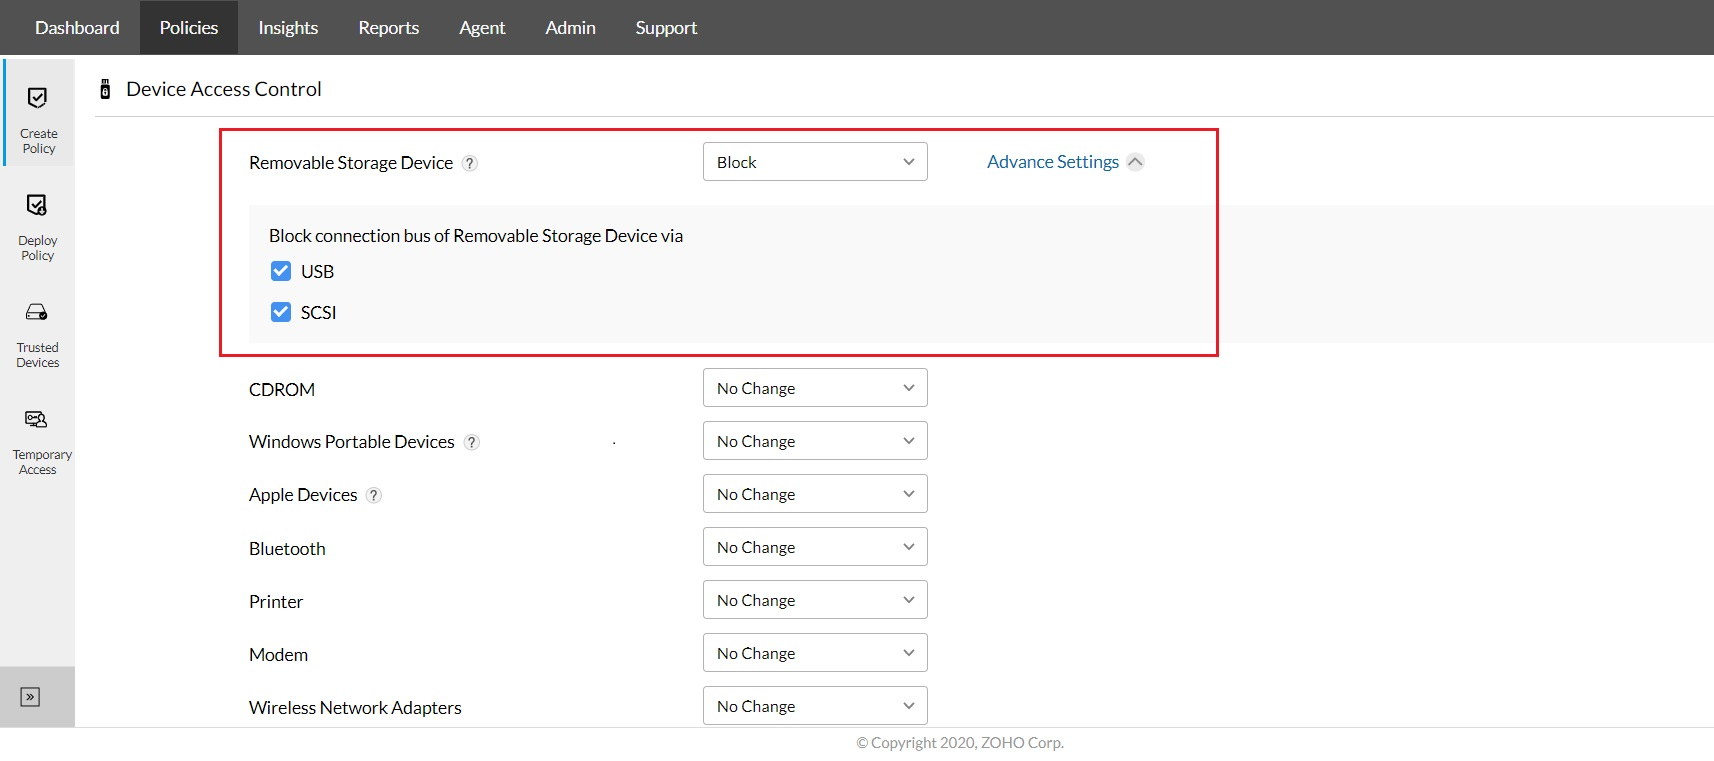 Bad USB security with ManageEngine Device Control Plus